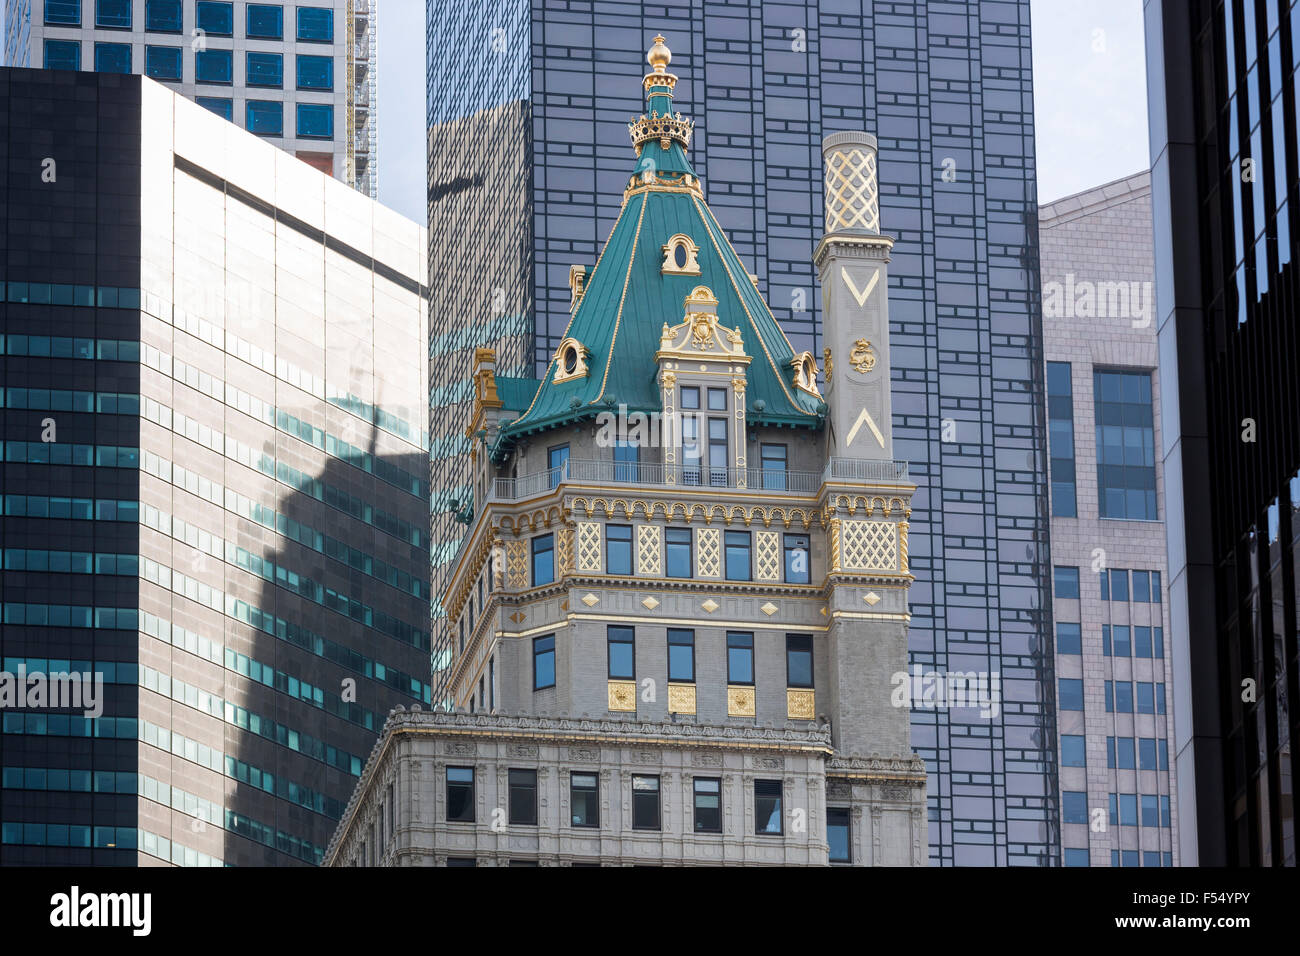 High rise skyscrapers, glass and gold leaf, on corner of 57th Street and 6th Avenue, Avenue of the Americas, New - Stock Image